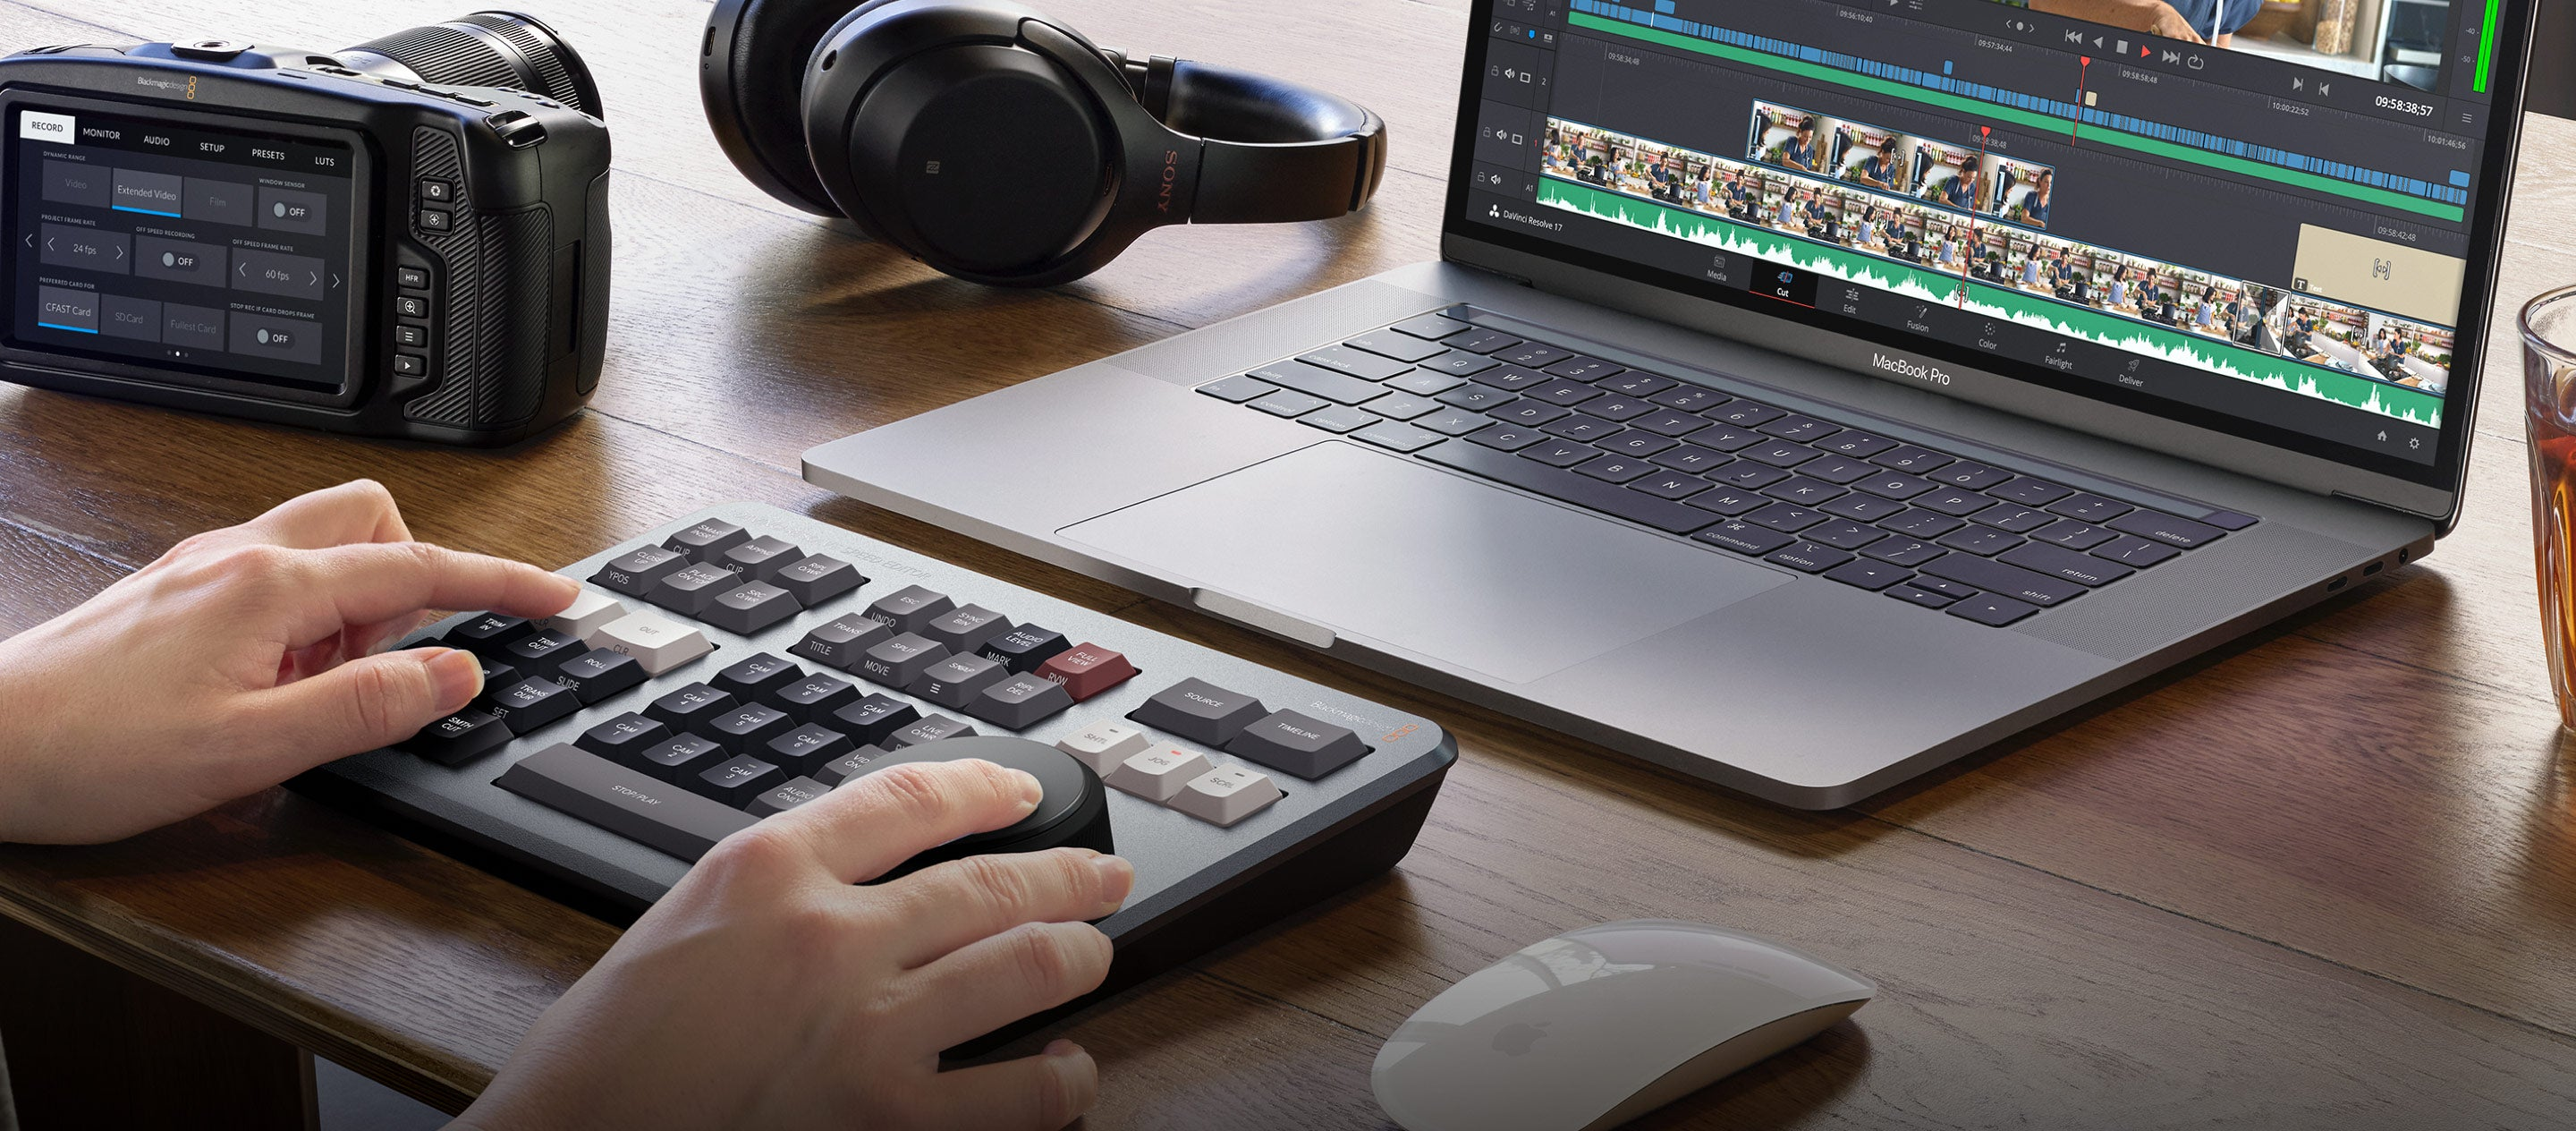 Blackmagic DaVinci Resolve keyboard